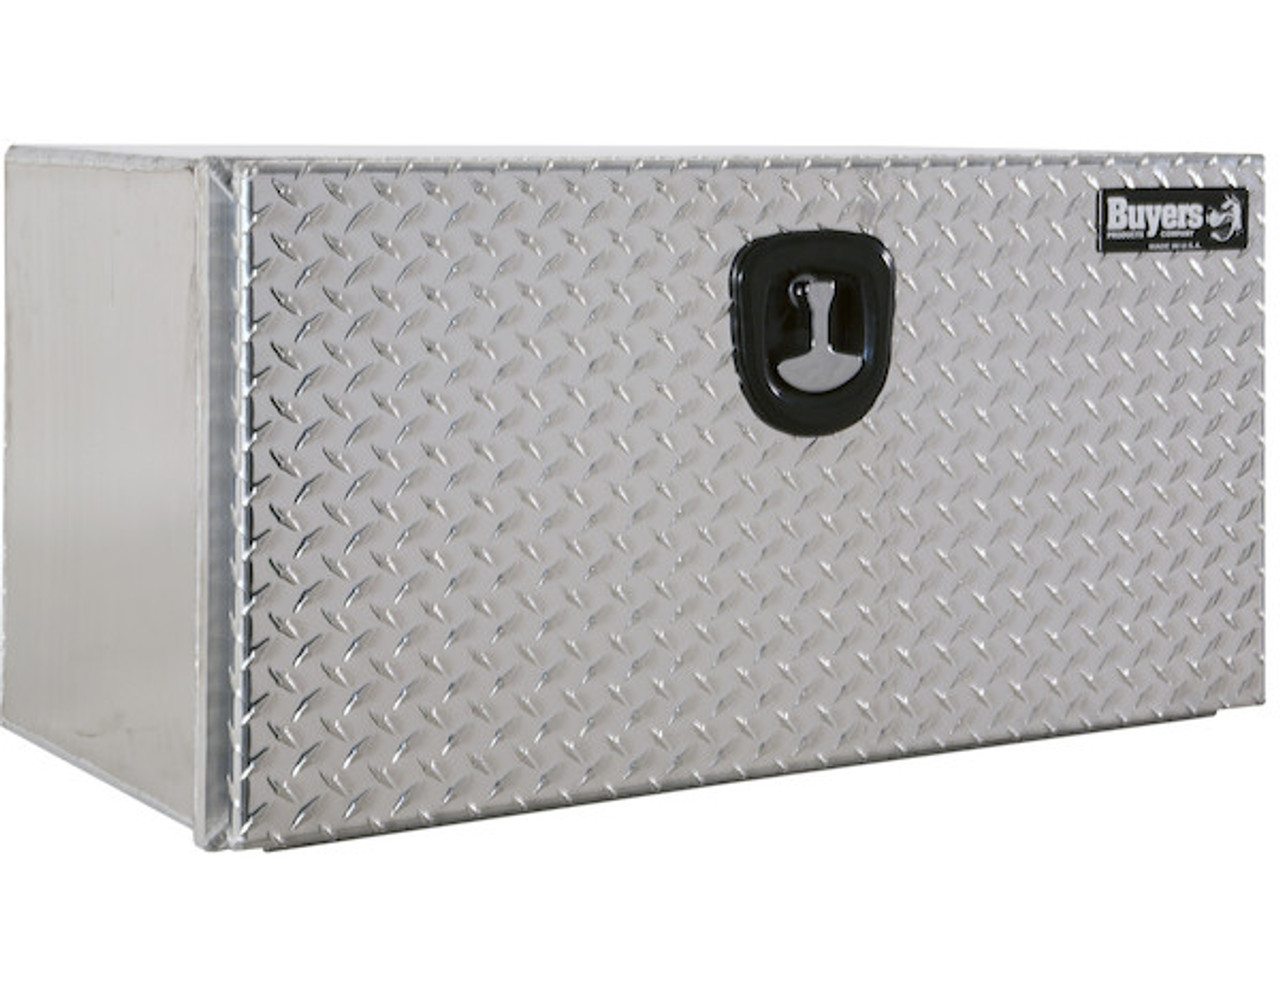 "1706503 BUYERS PRODUCTS XD SMOOTH ALUMINUM UNDERBODY TRUCK TOOLBOX WITH DIAMOND TREAD DOOR 18""HX18""DX30""W"